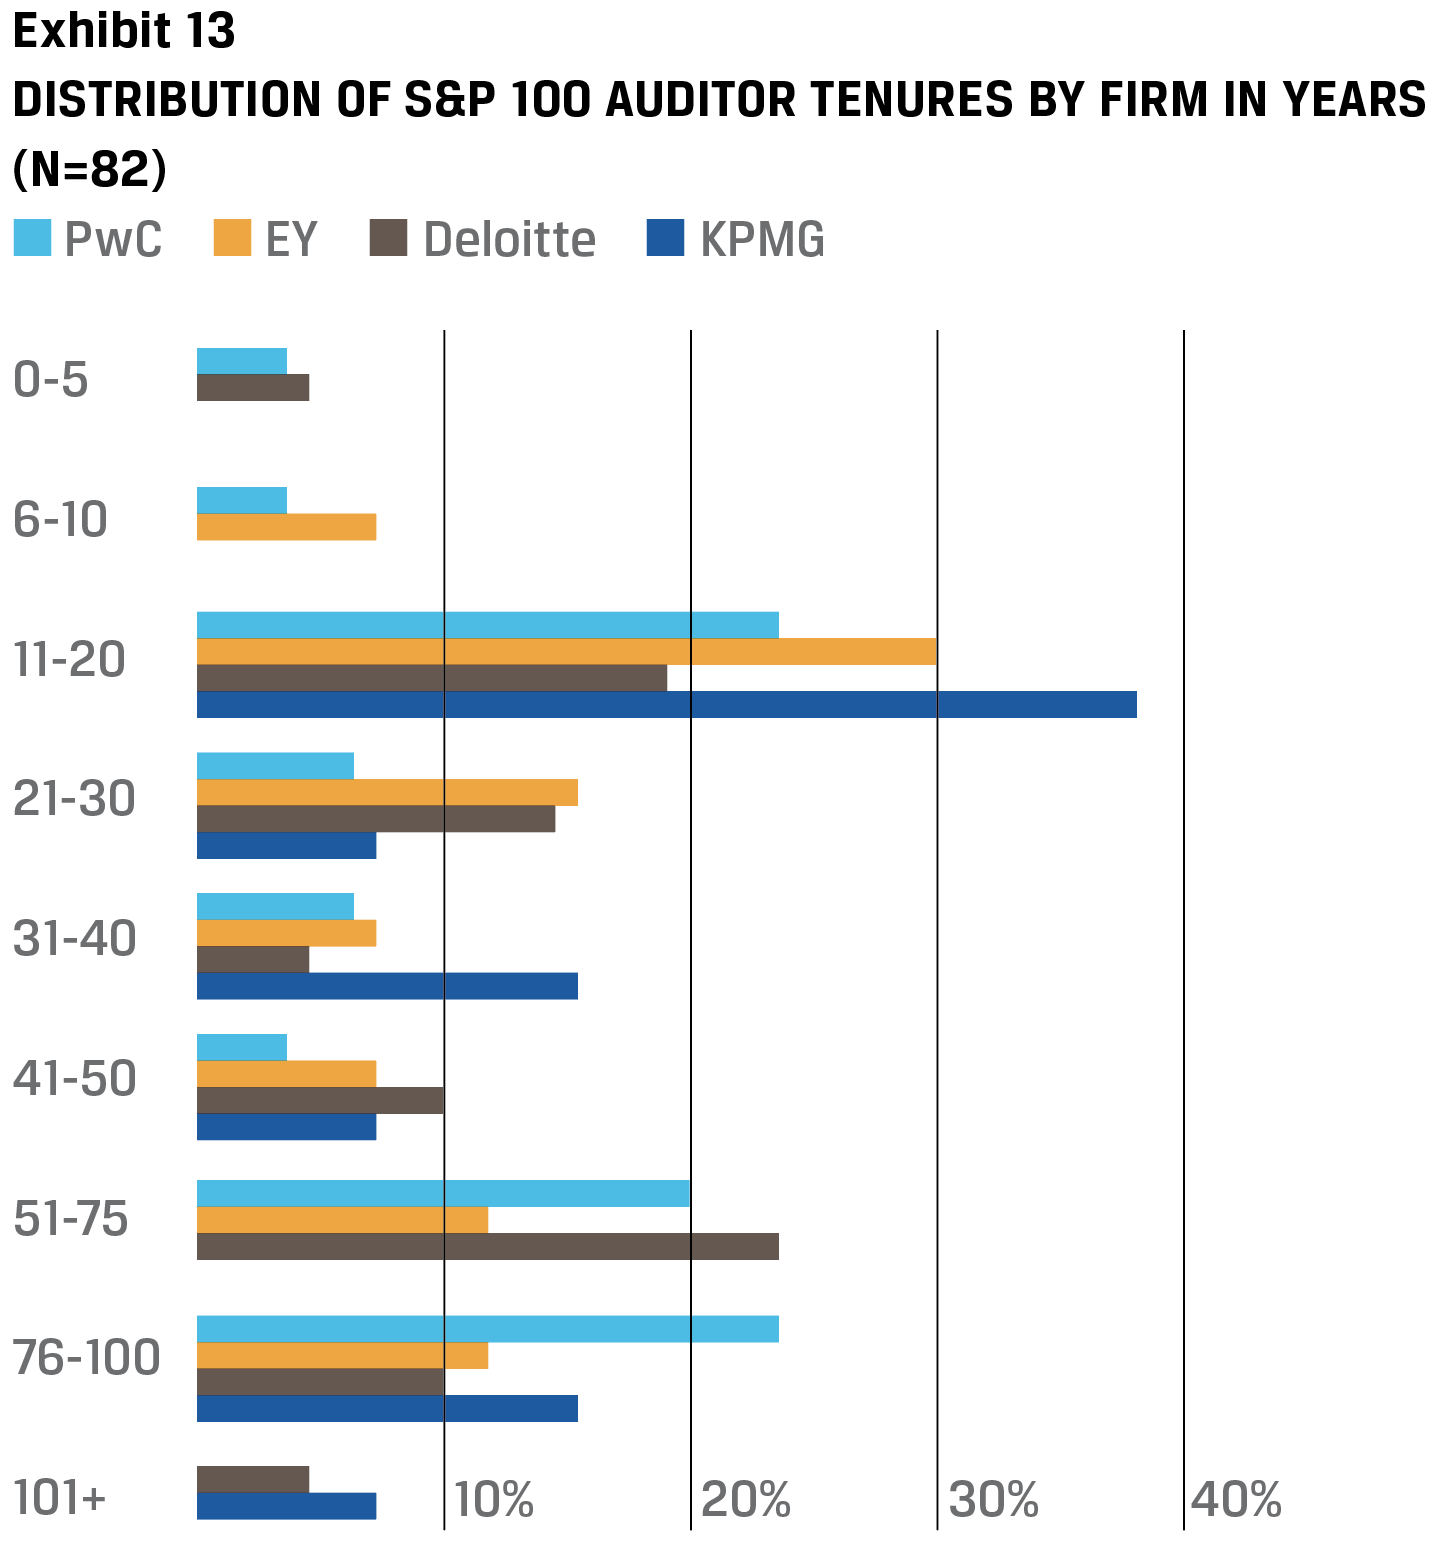 Exhibit 13 Distribution of S&P 100 auditor tenures by firm in years (N=82)